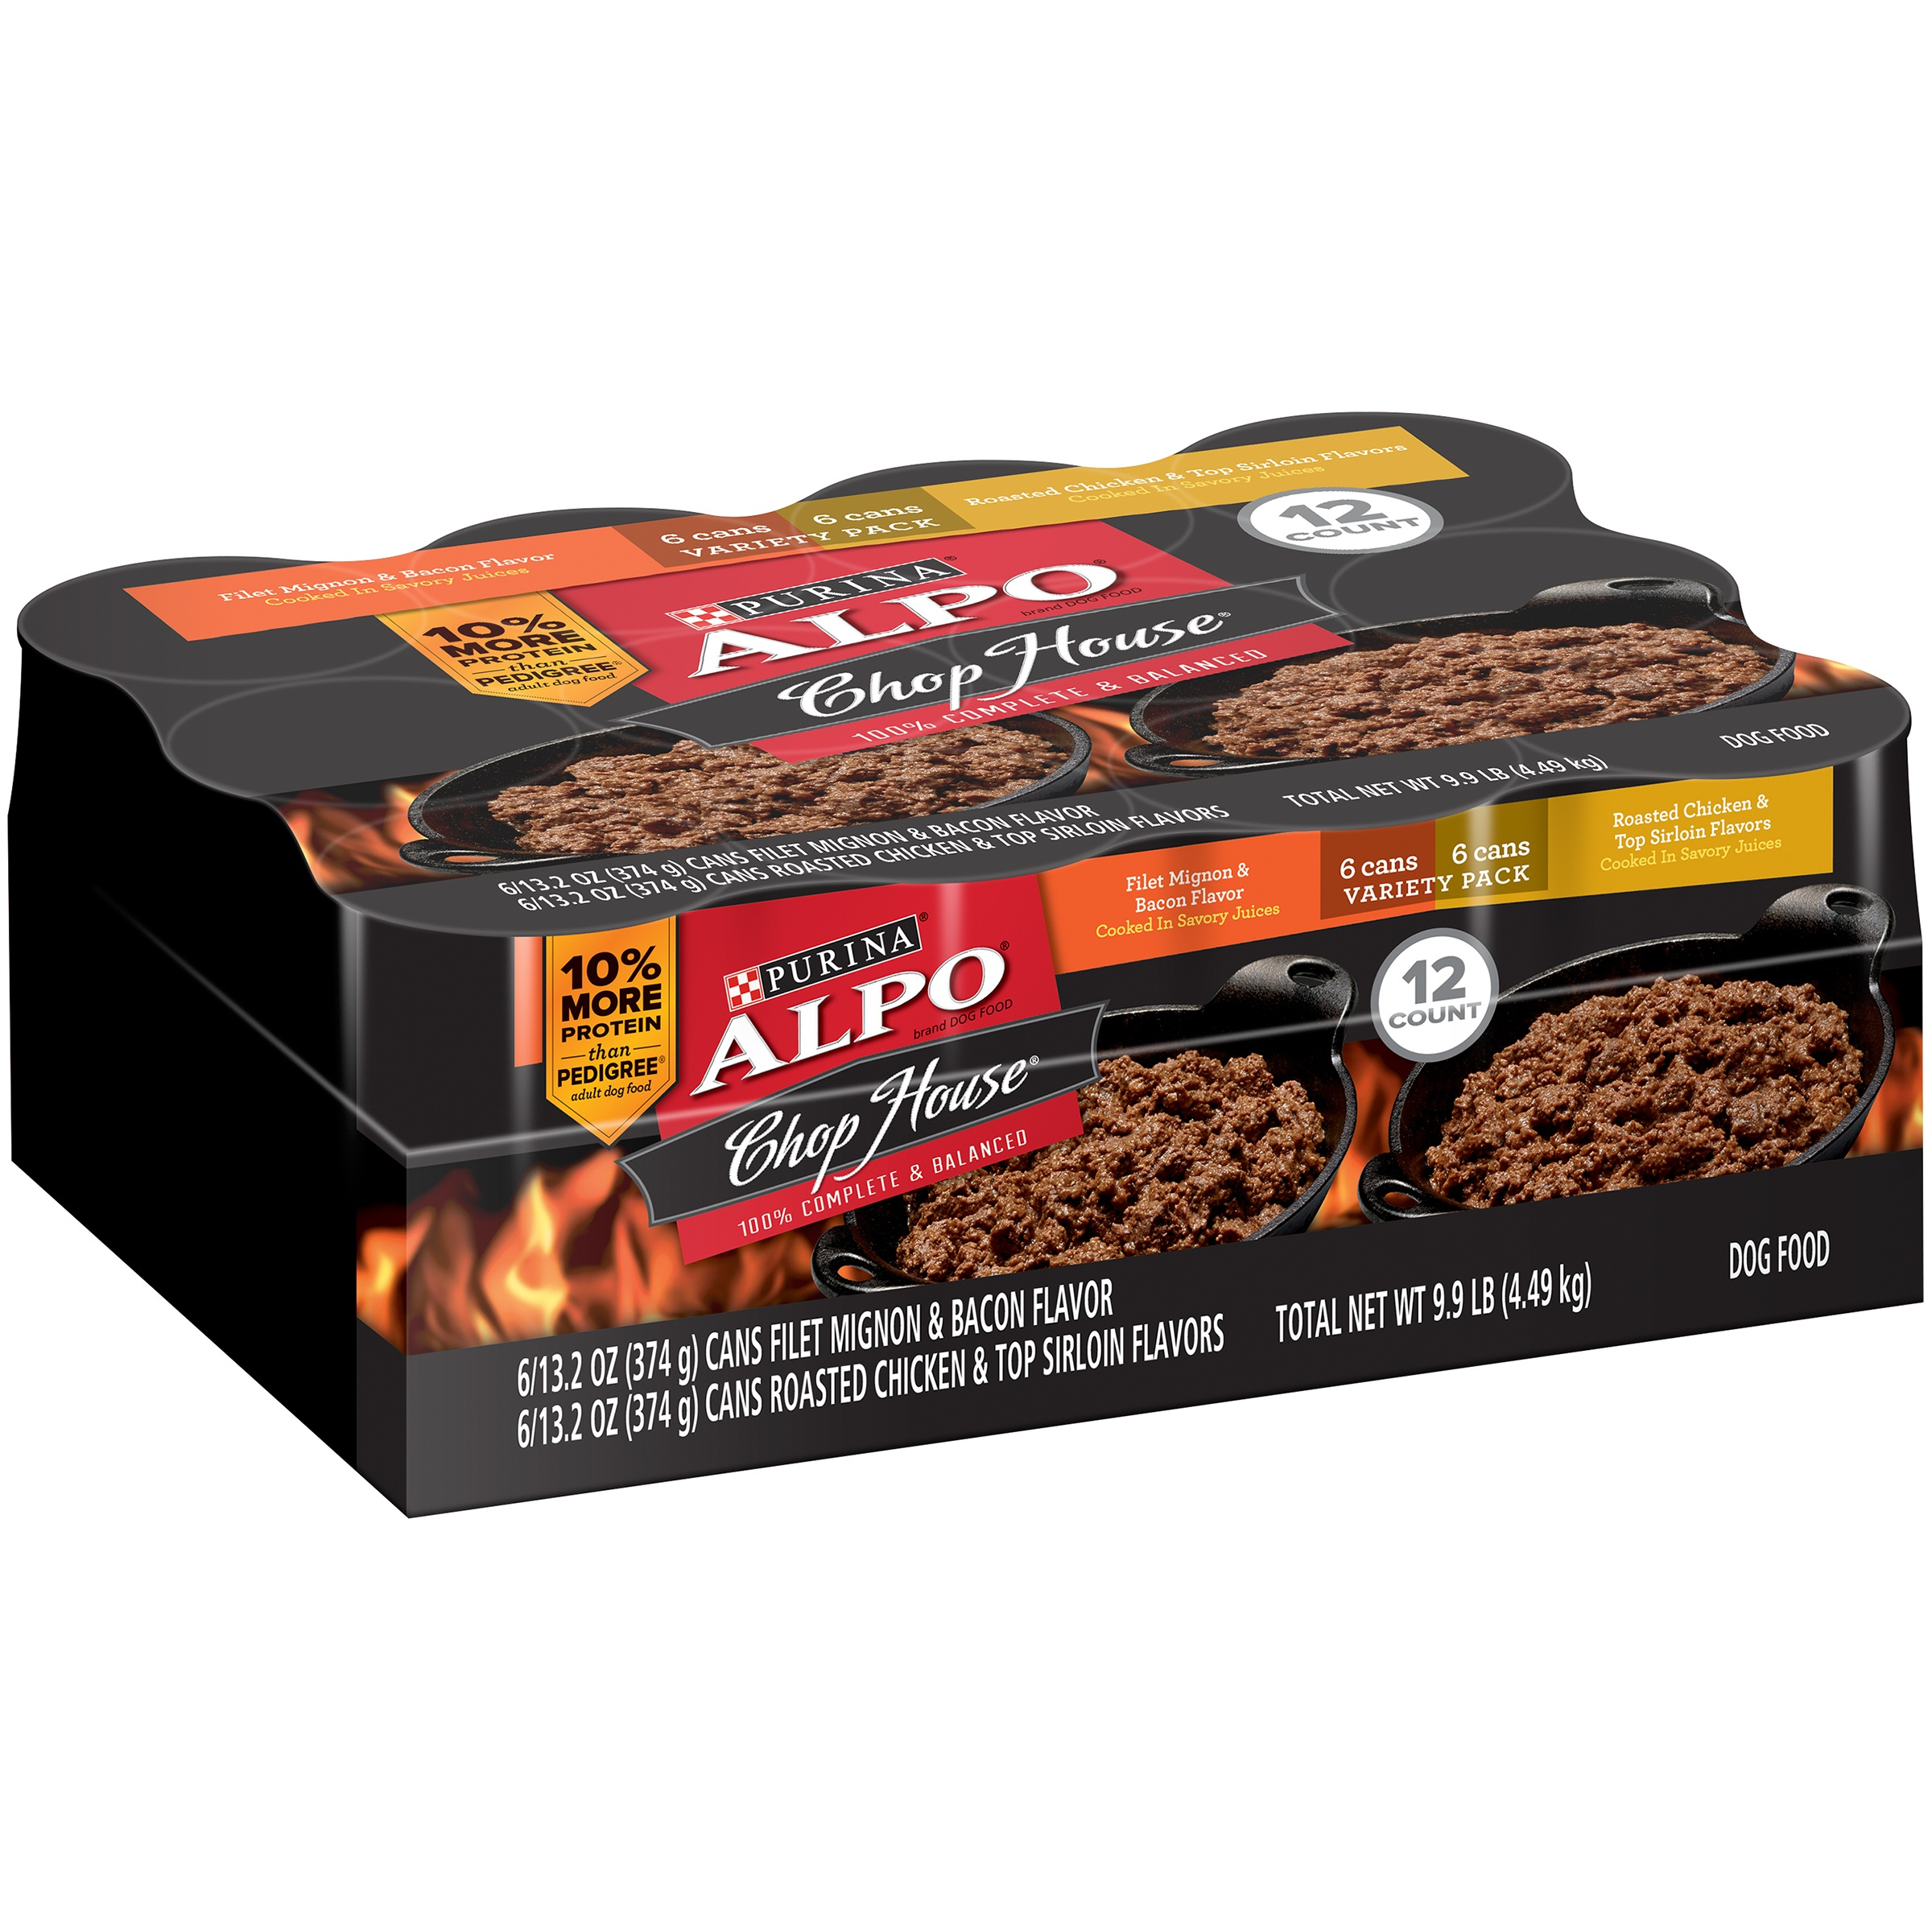 Purina ALPO Chop House Filet Mignon, Roasted Chicken & Top Sirloin Wet Dog Food Variety Pack (12) 13.2 oz. Cans by Nestle Purina Petcare Company